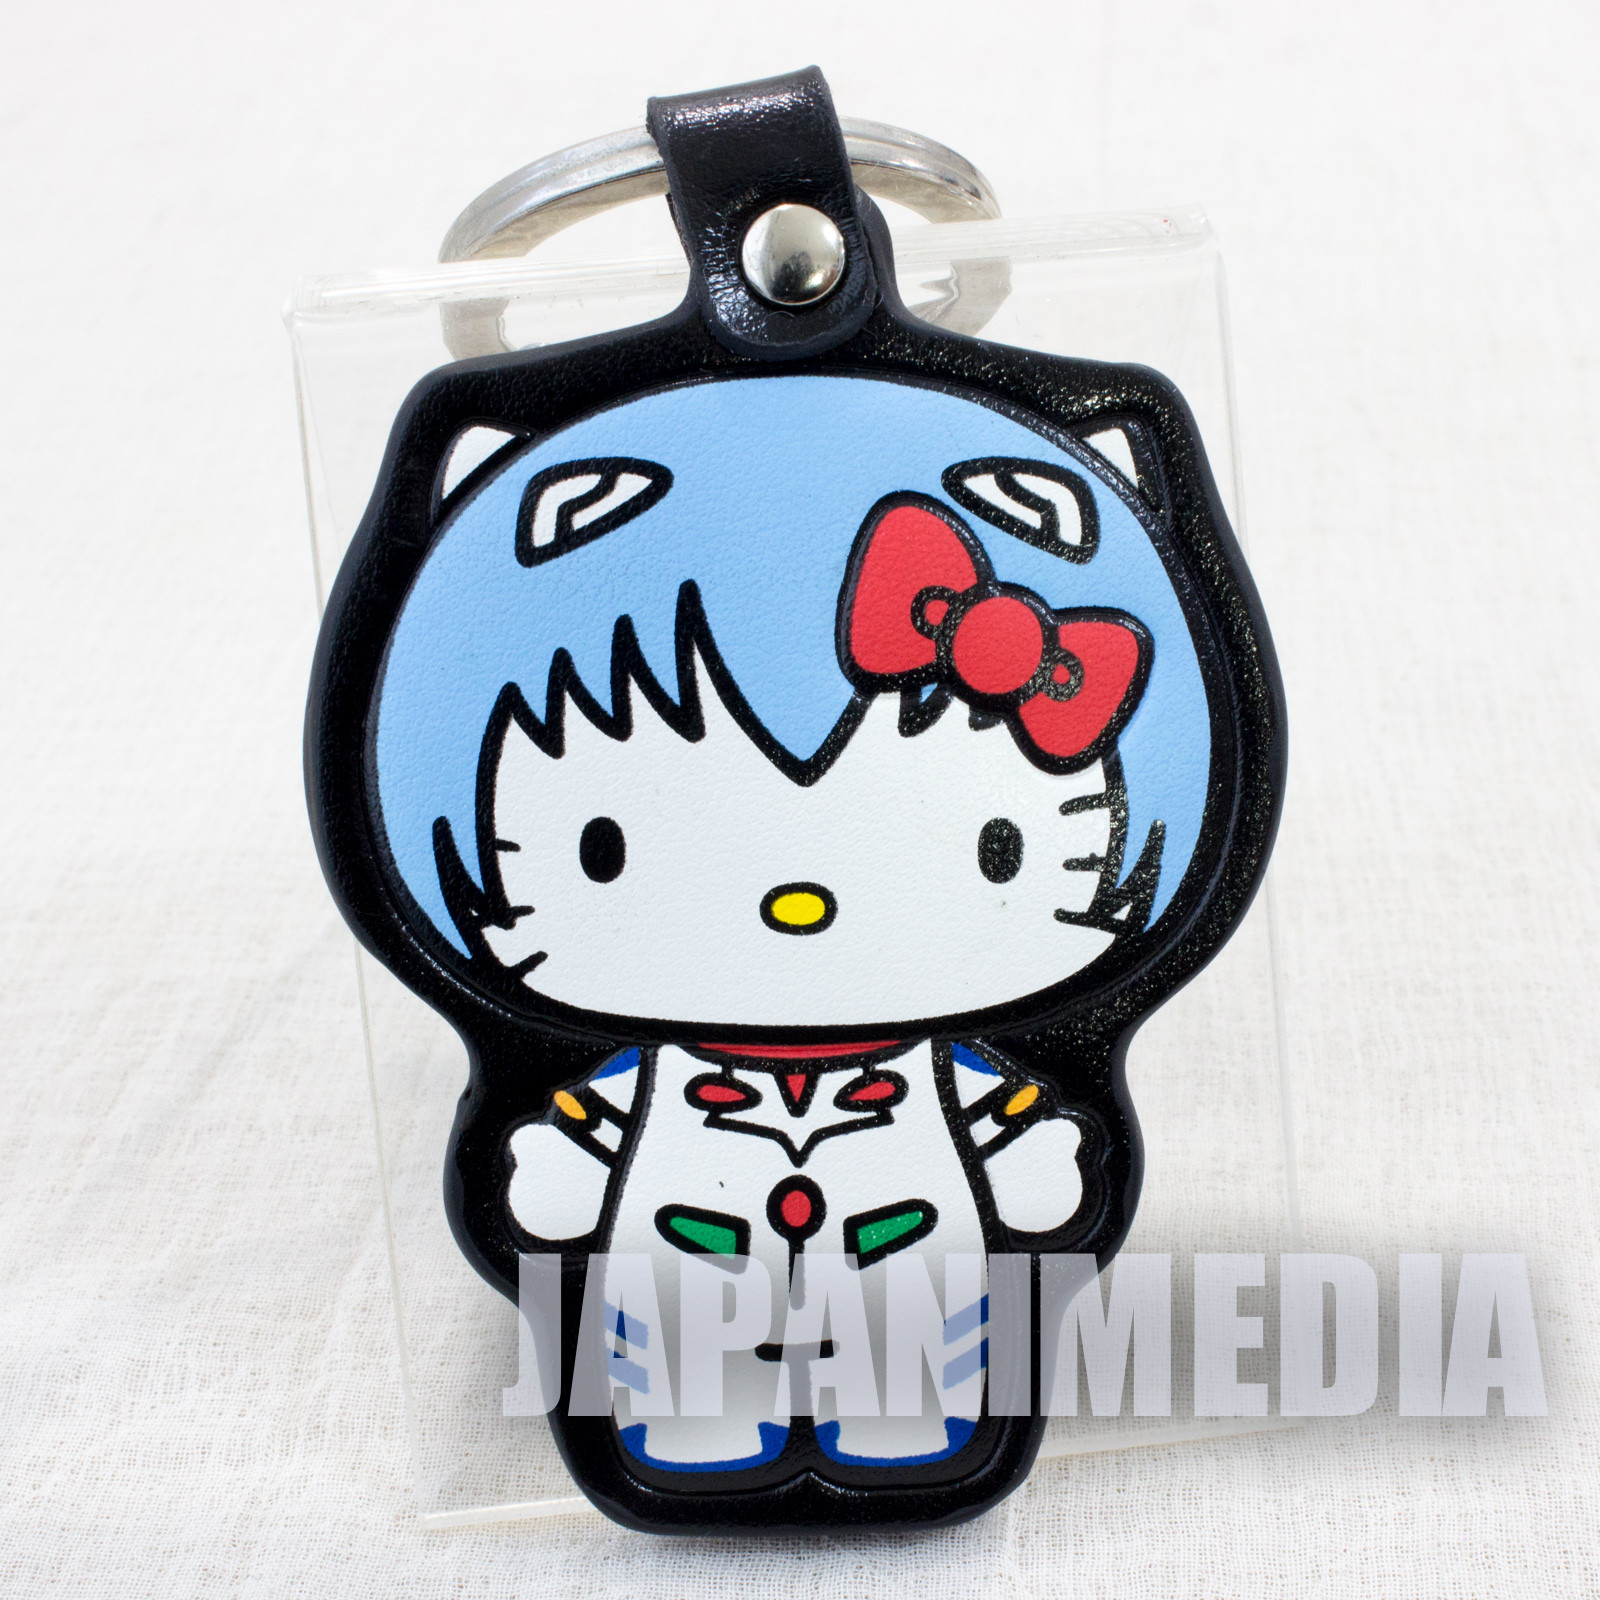 Evangelion x Hello Kitty Rei Ayanami Synthetic Leather Mascot Keychain Sanrio